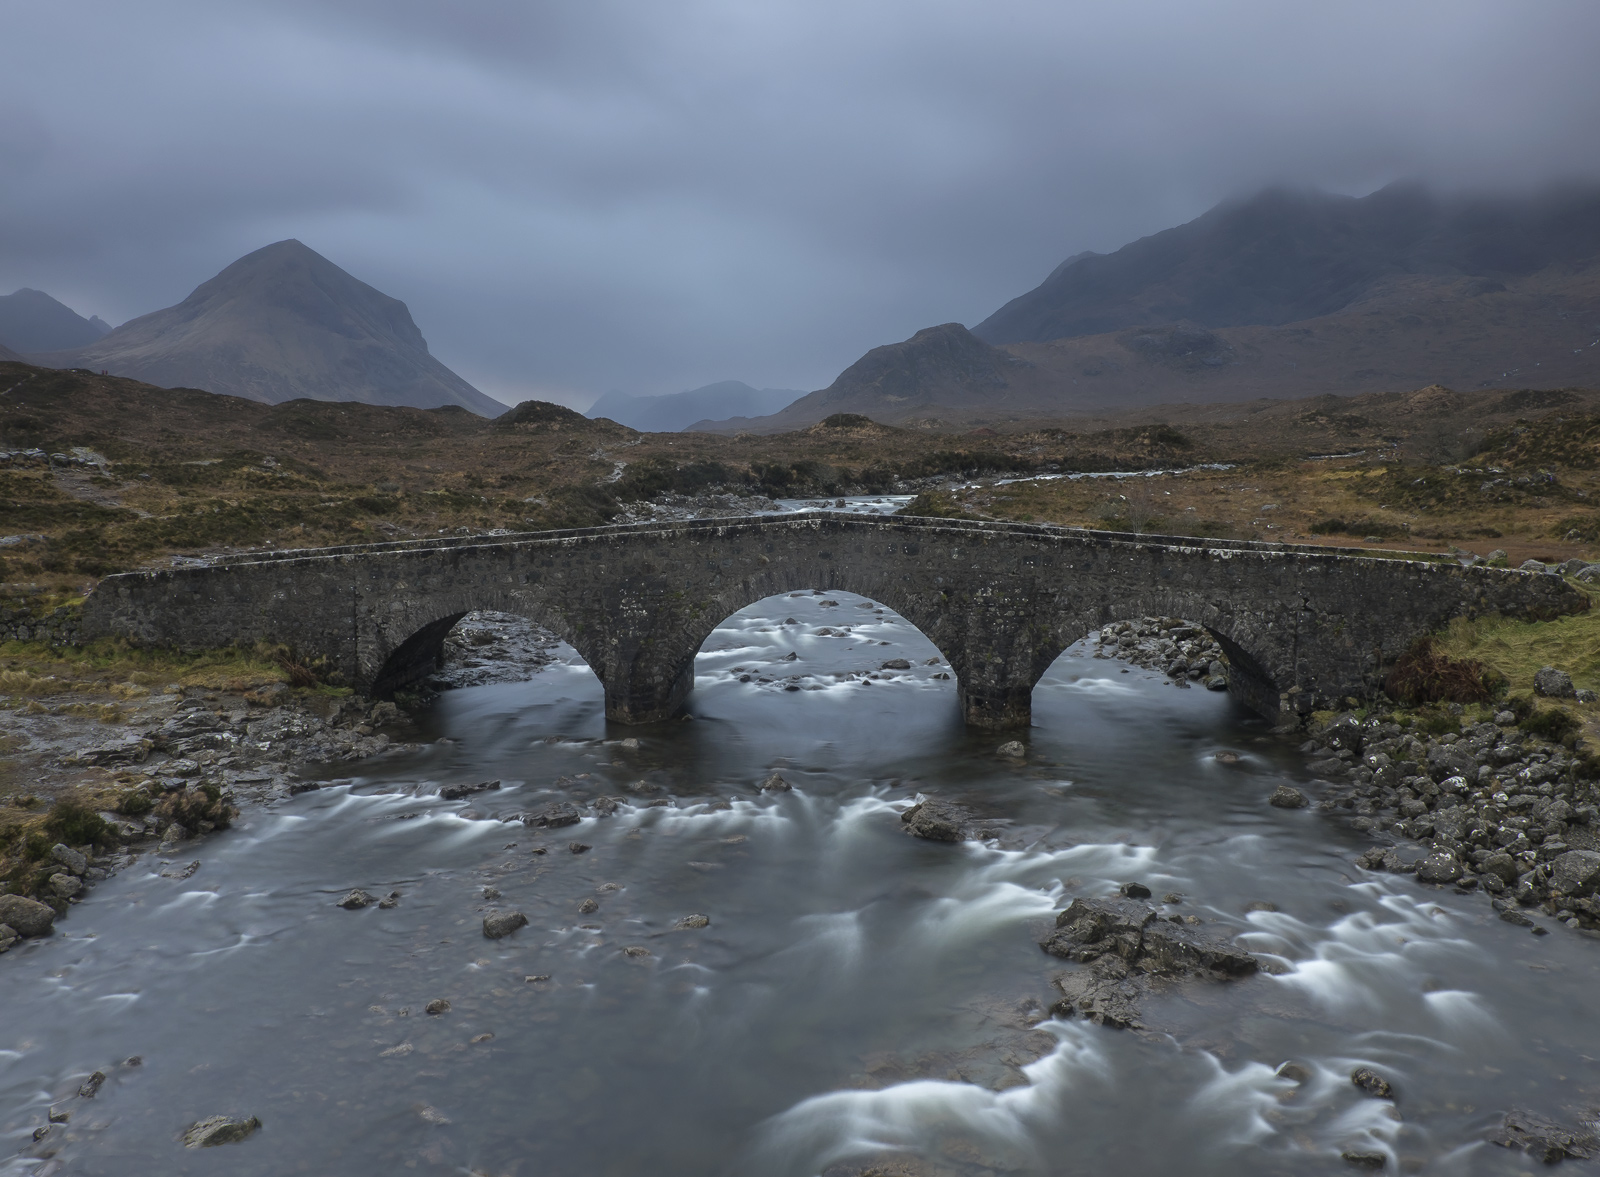 Gloomy Sligachan, Sligachan, Skye, Scotland, triple, arch, pack bridge, mountain, sunrise, rain, gloominess, river , photo